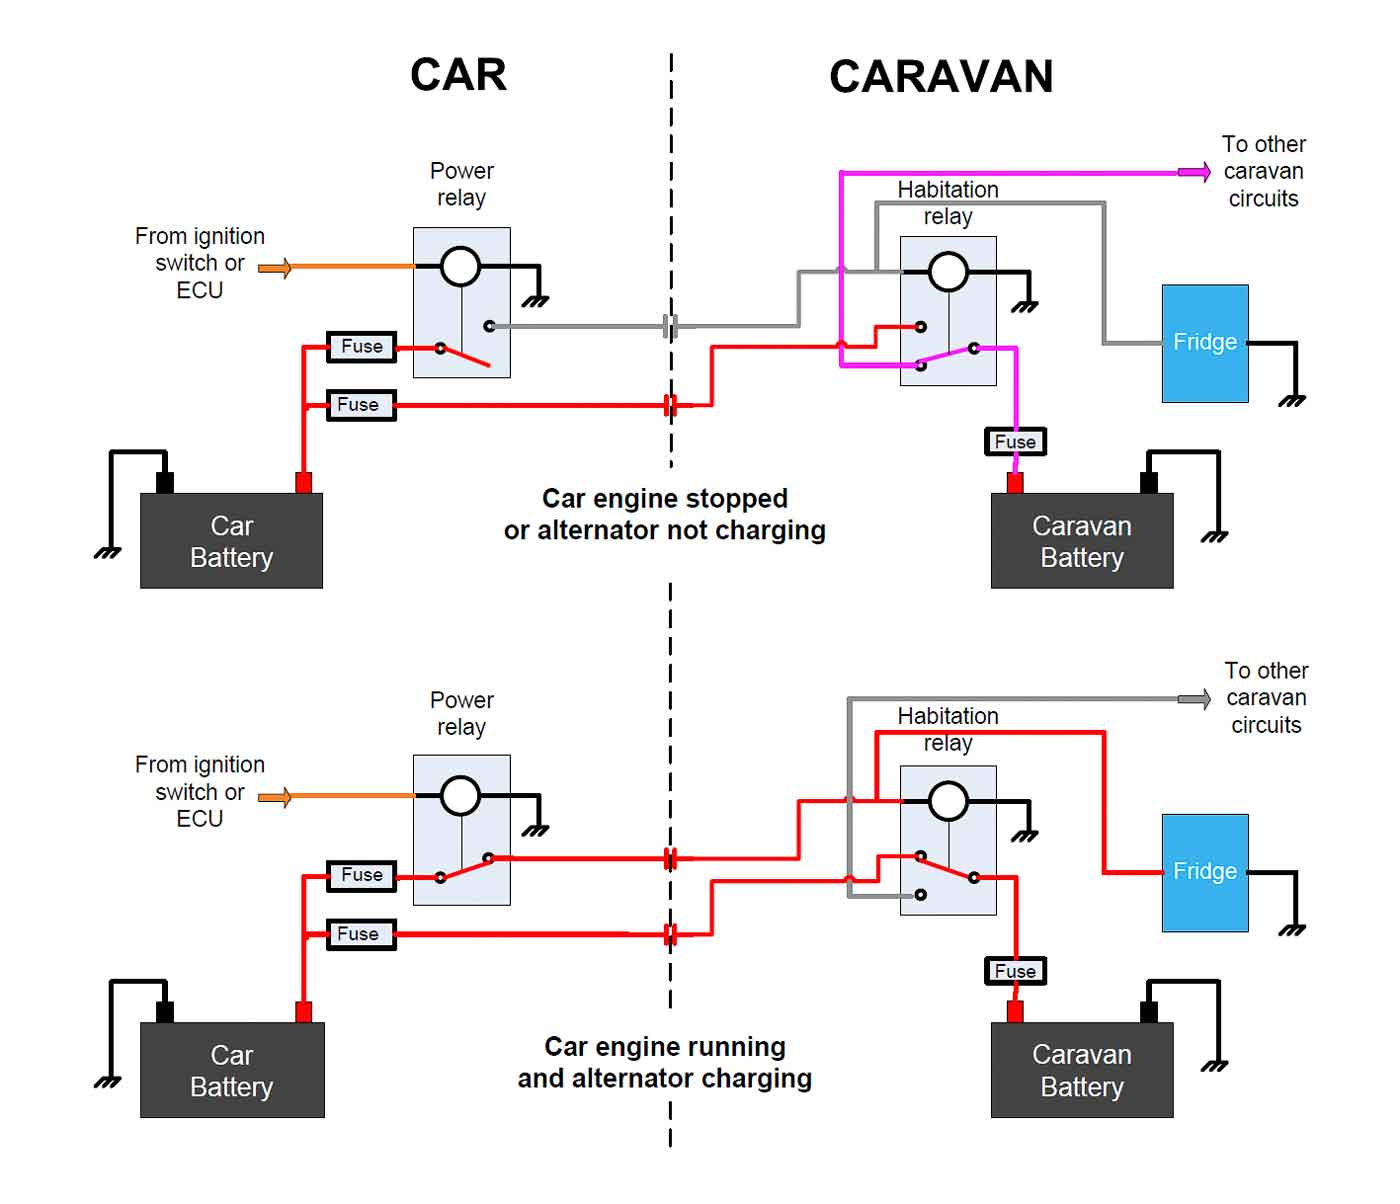 Wiring Diagram For Caravan Ignition System 29 Towbars And Towing Electrics The Camping Caravanning Club Alternator Technology